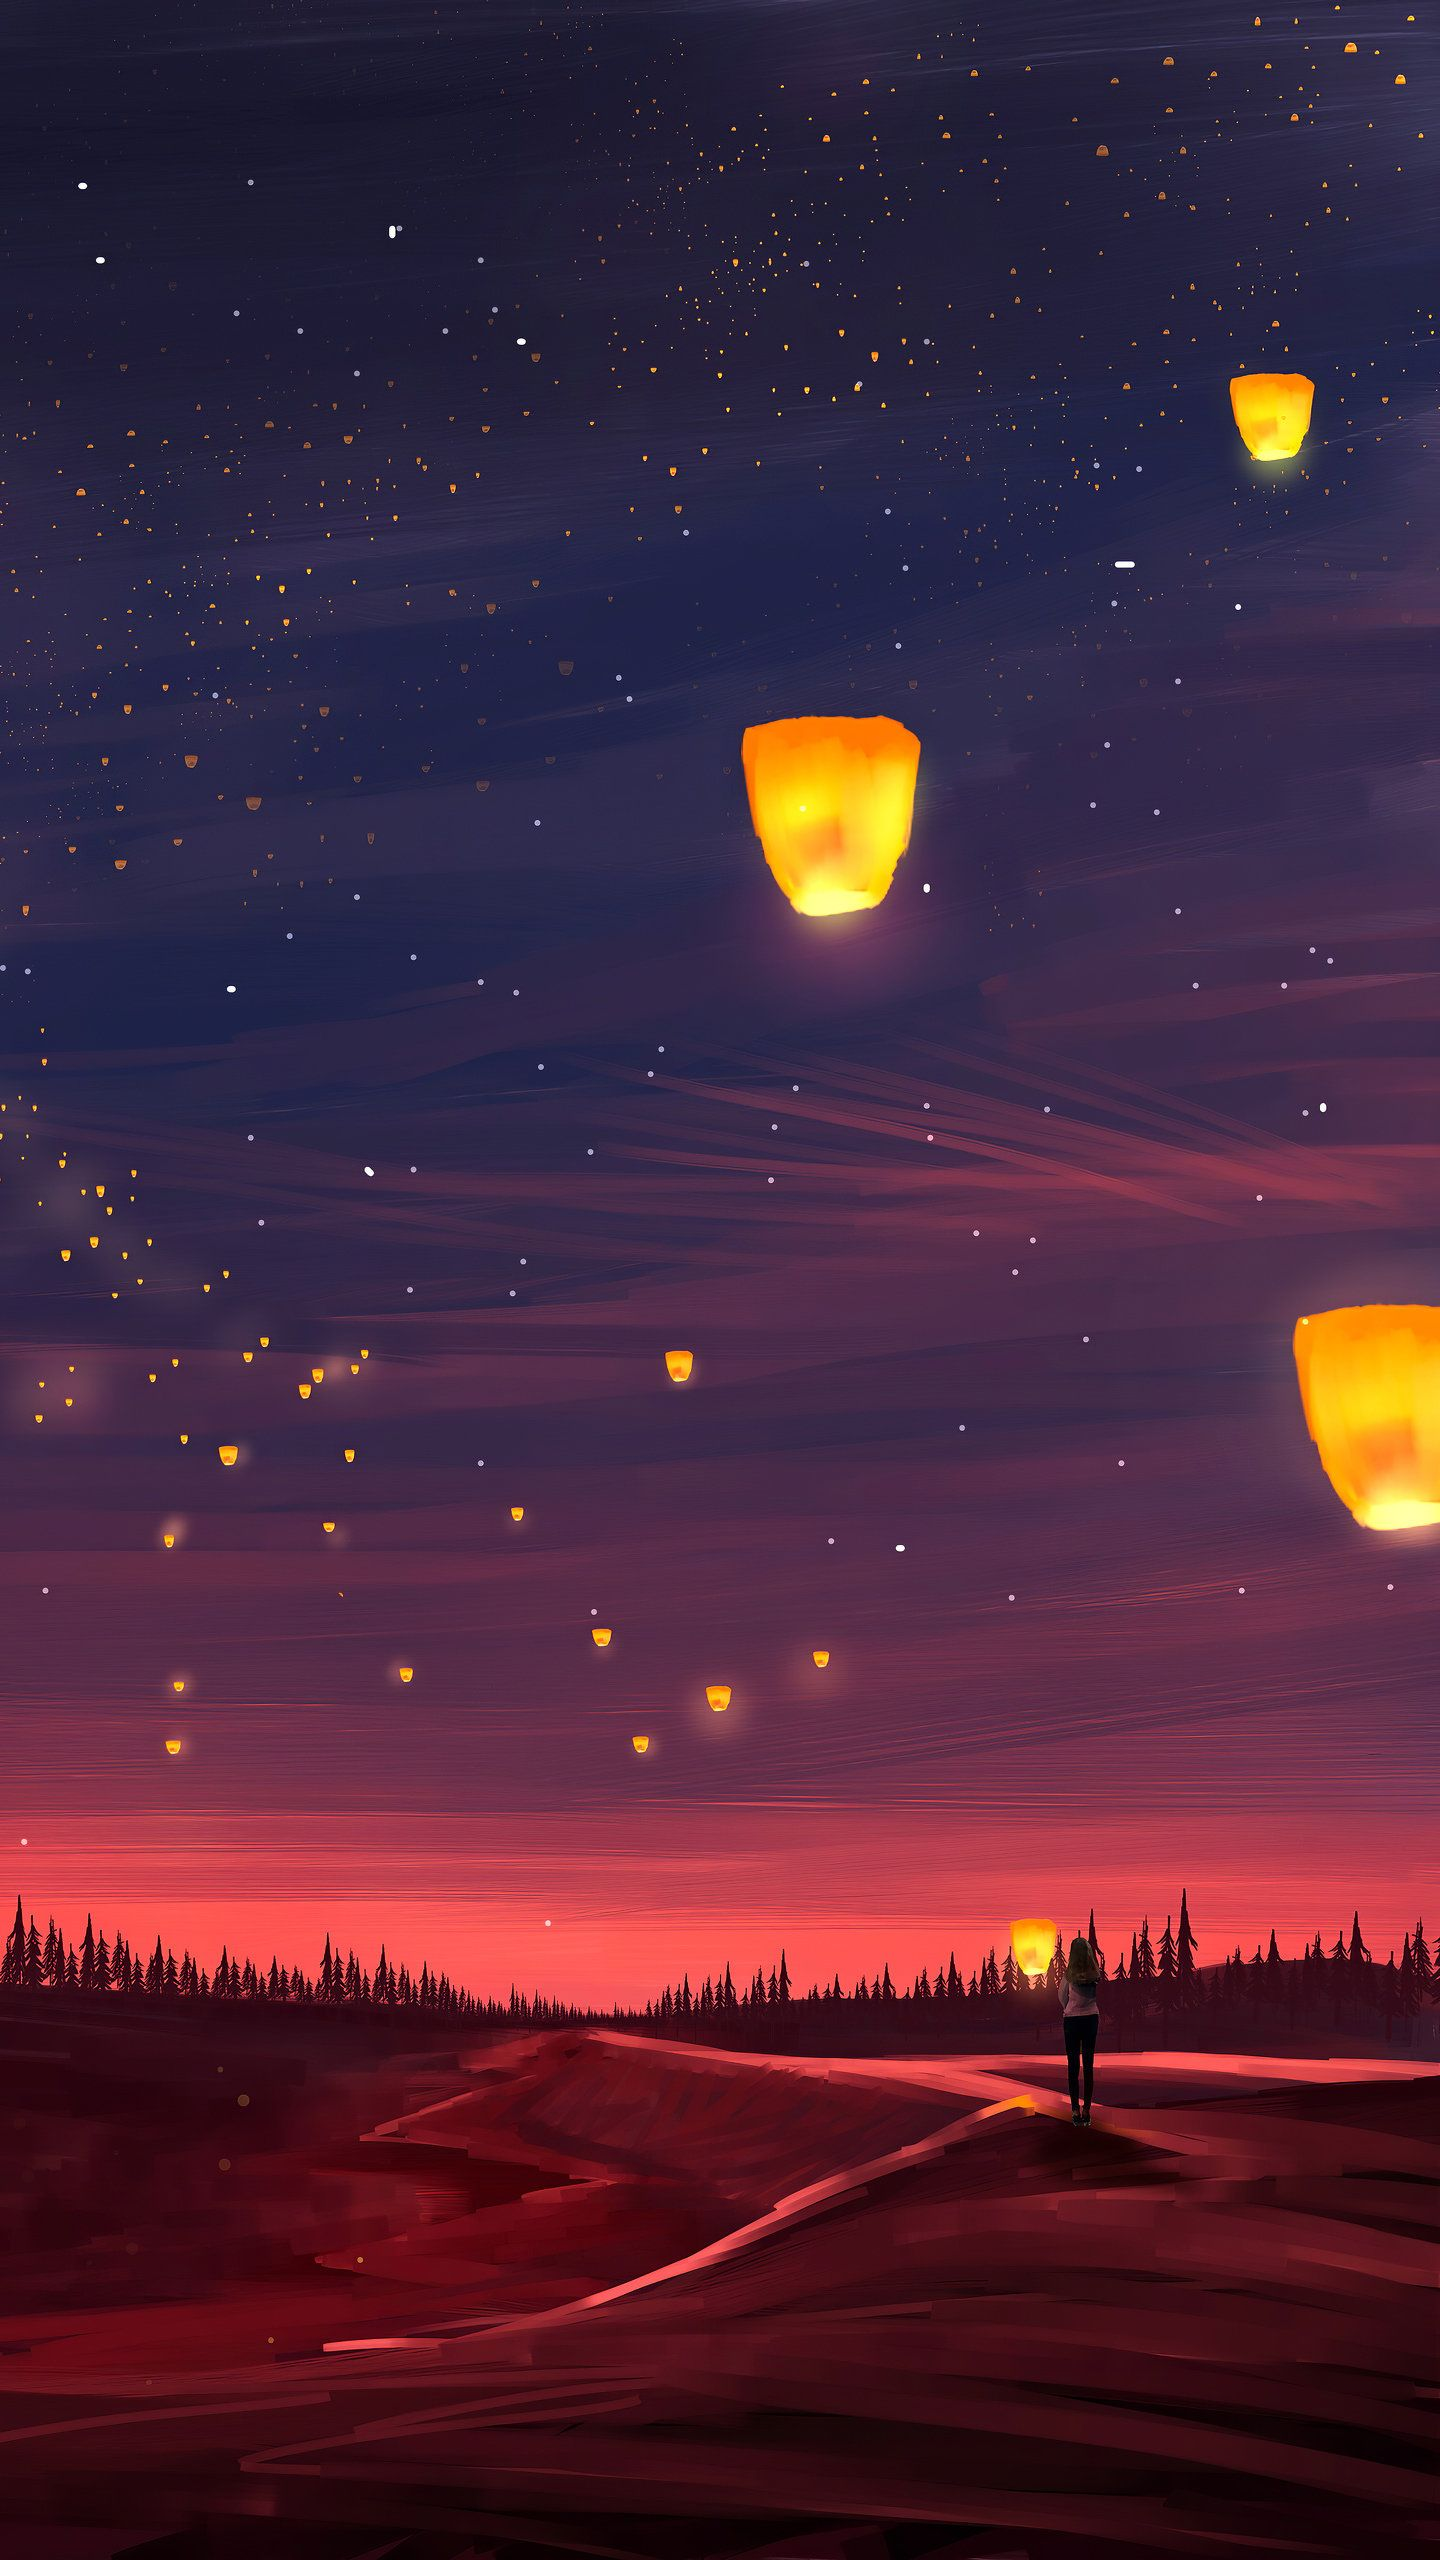 The Quiet Is Nice 4k Hd Artist Wallpapers Photos And Pictures Id 44862 Scenery Wallpaper Anime Scenery Wallpaper Sky Lanterns